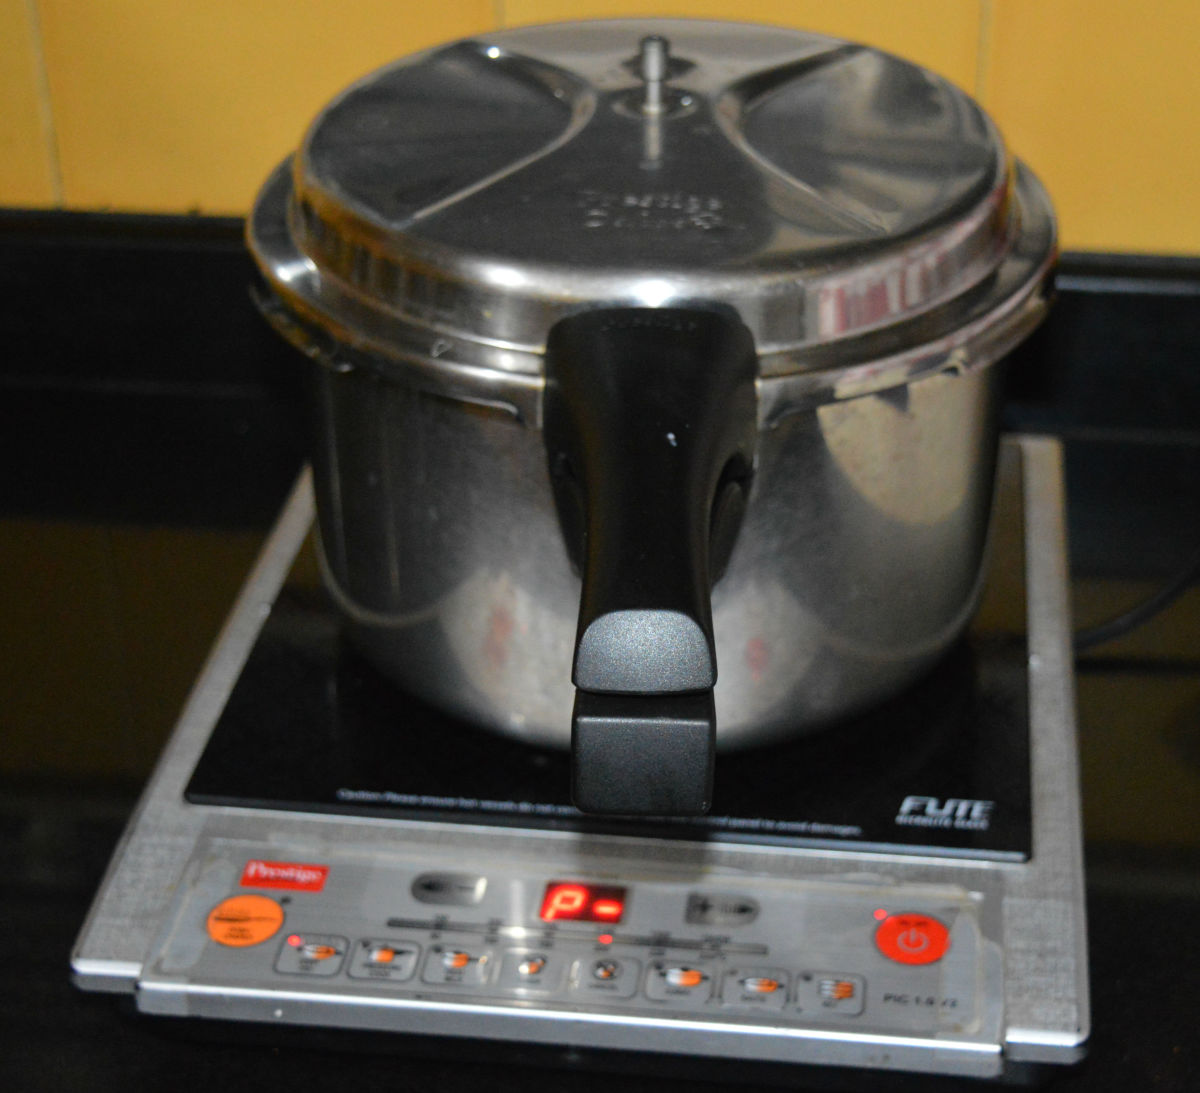 The cooker having idli stand inside. Keep the heat medium-high. Steam-cook up to 10-11 minutes. Next, turn off the heat. Open the lid after 2-3 minutes.